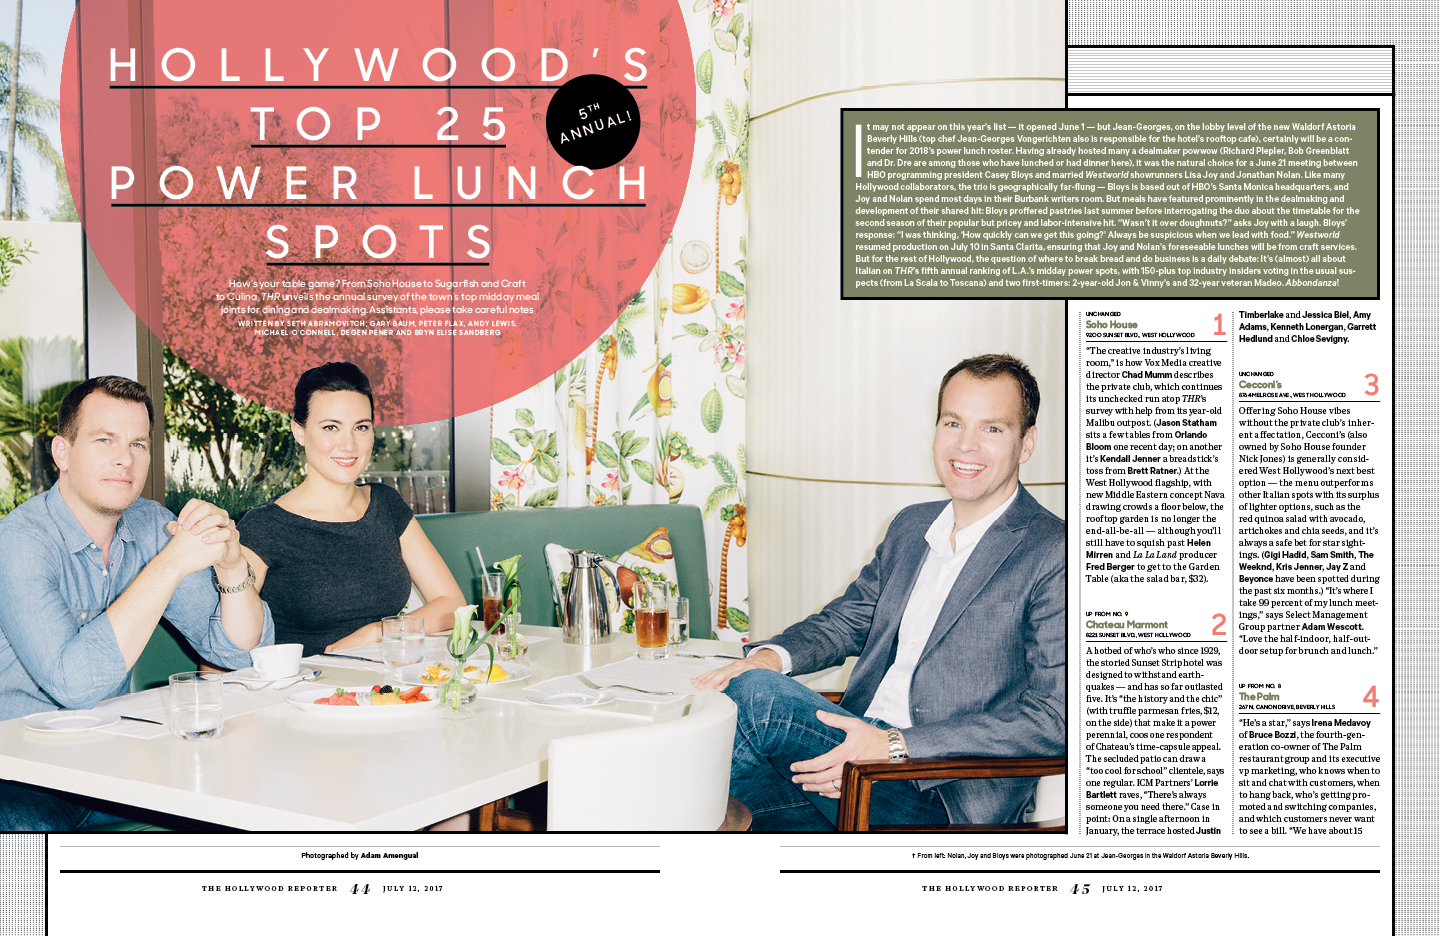 Hollywood's (5th Annual!) Top 25 Power Lunch Spots / The Hollywood Reporter / 7.12.17 / kelsey stefanson / art direction + graphic design / yeskelsey.com